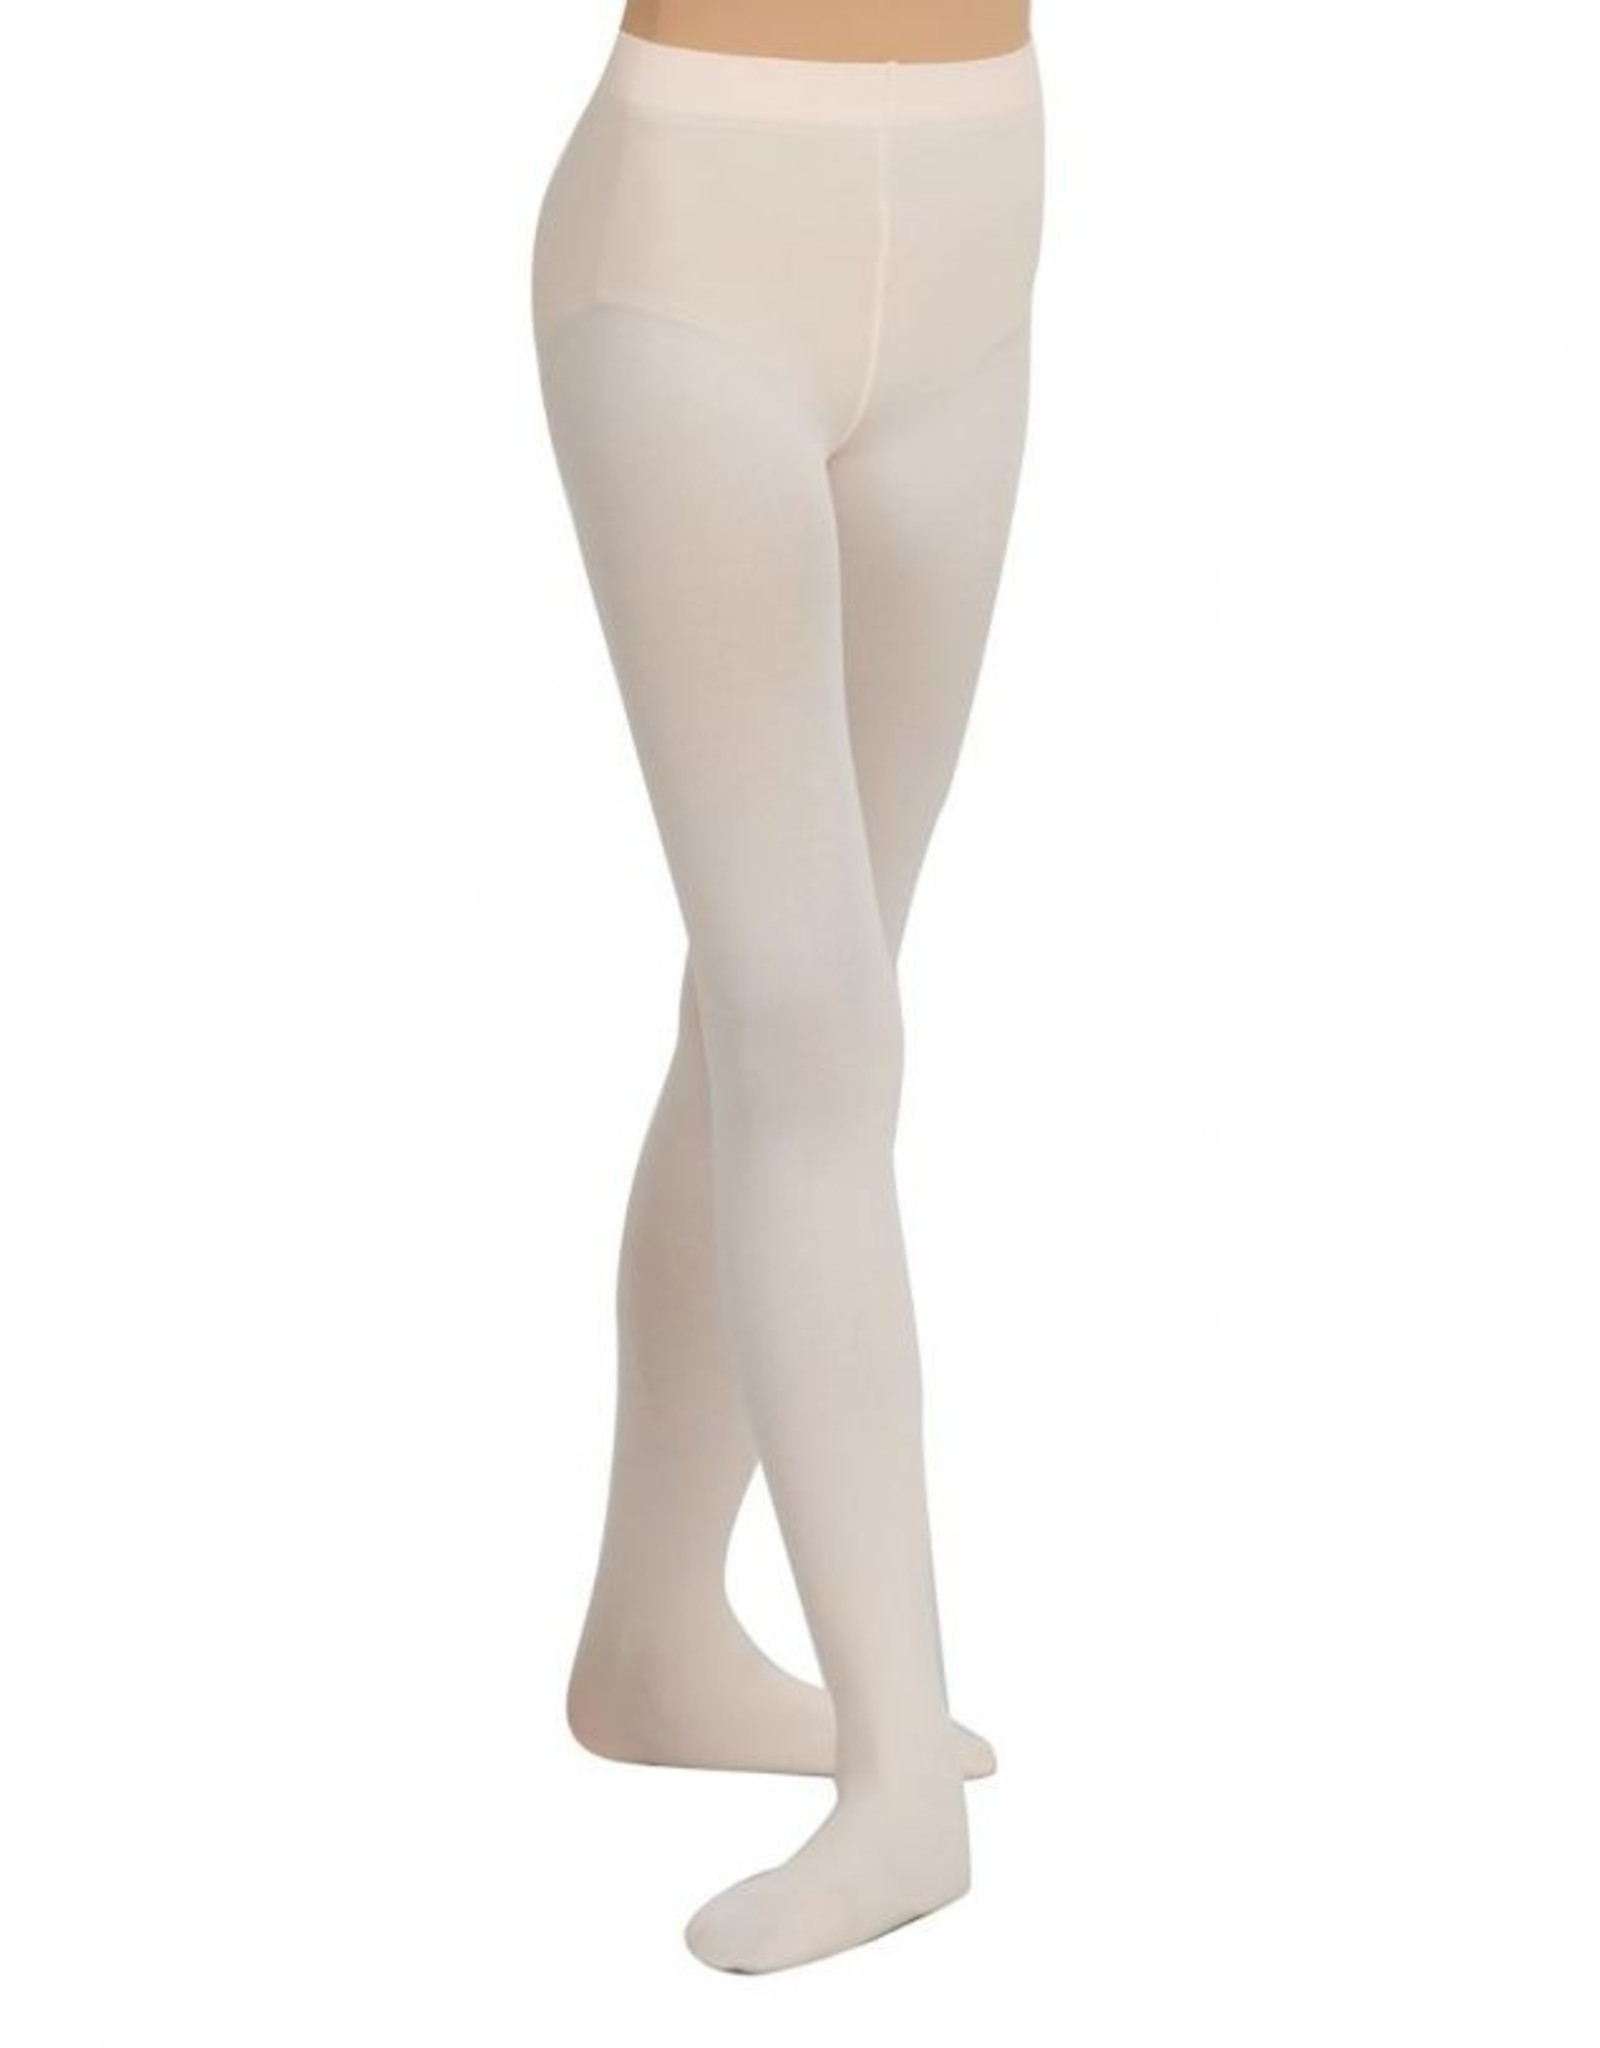 CHILDREN'S CAPEZIO ULTRA SOFT FOOTED TIGHTS - 1916C